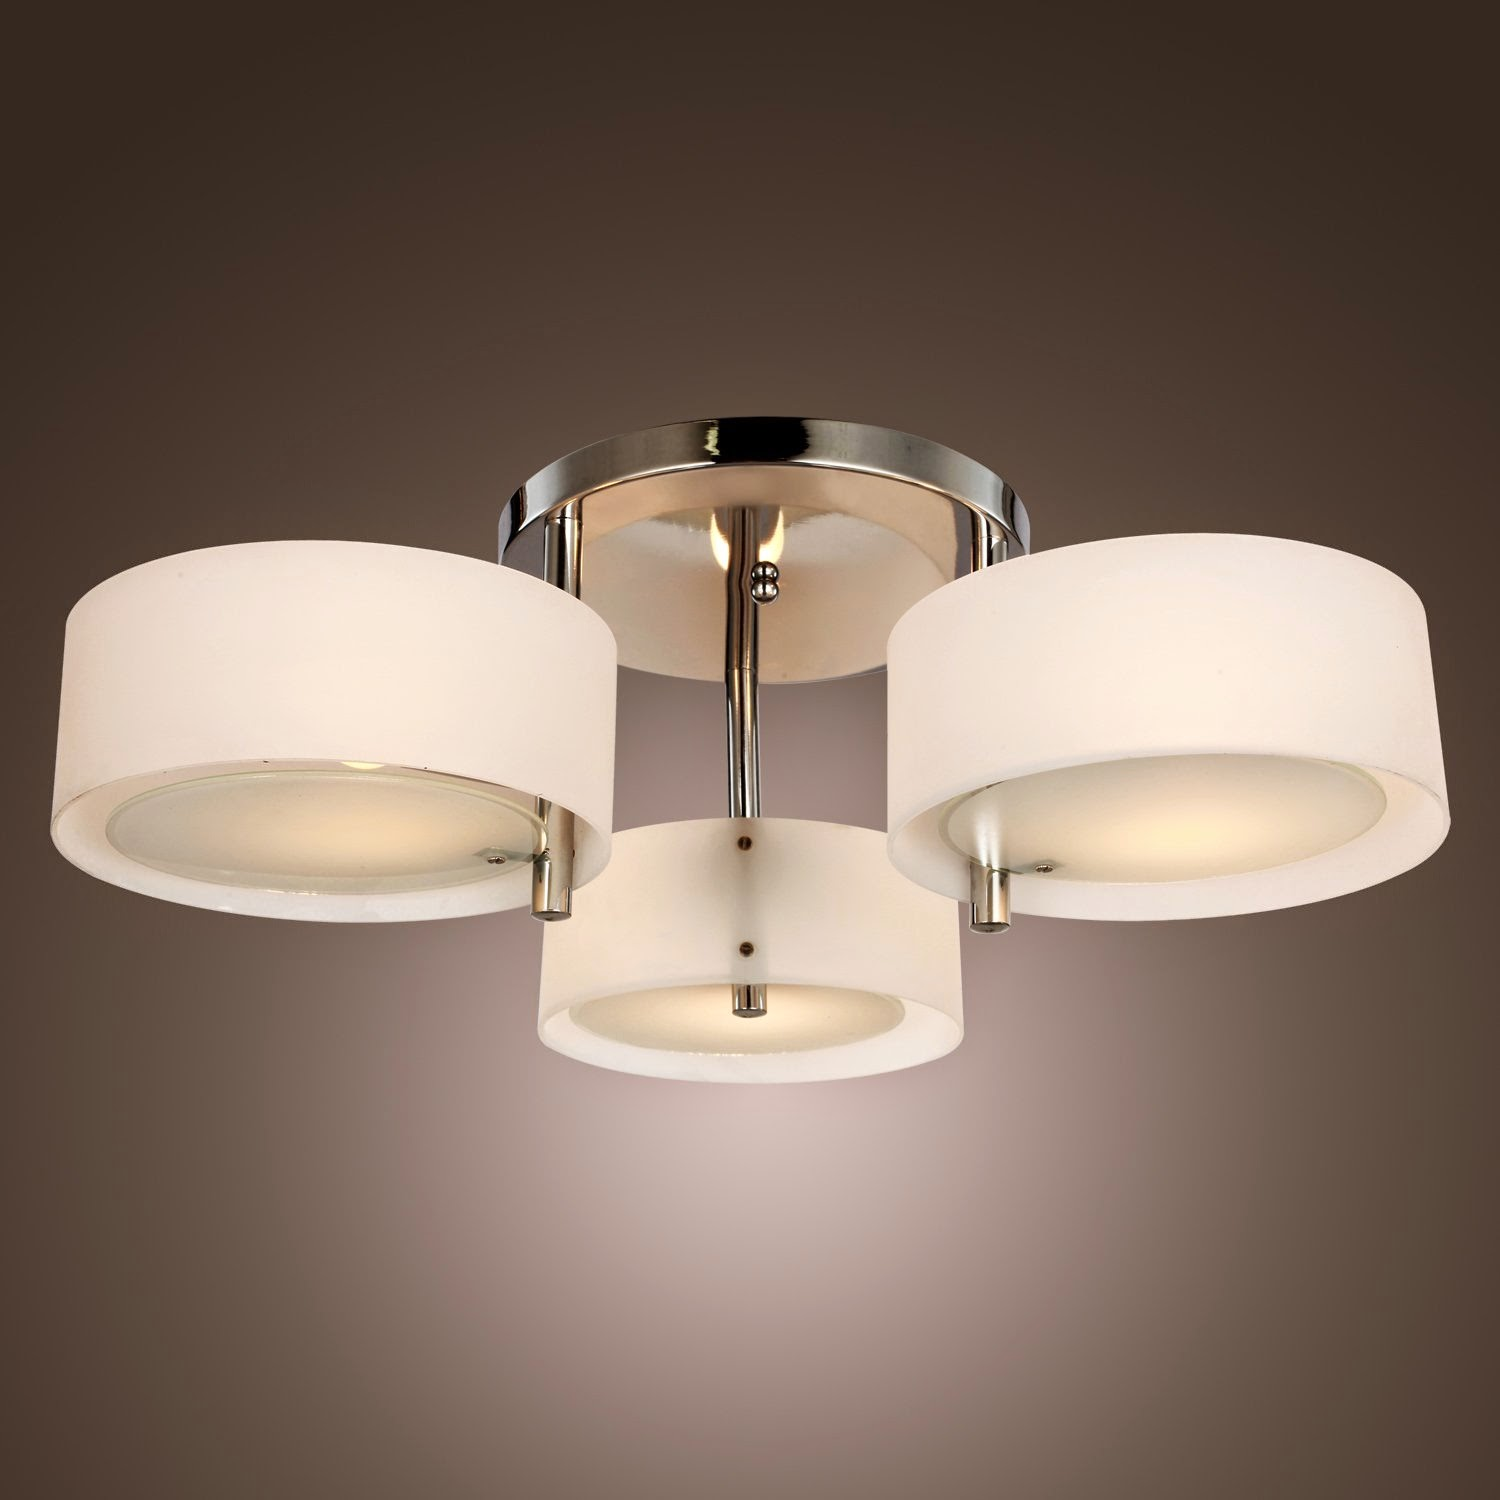 Cieling Lights Ceiling Light Fixture With Outlet